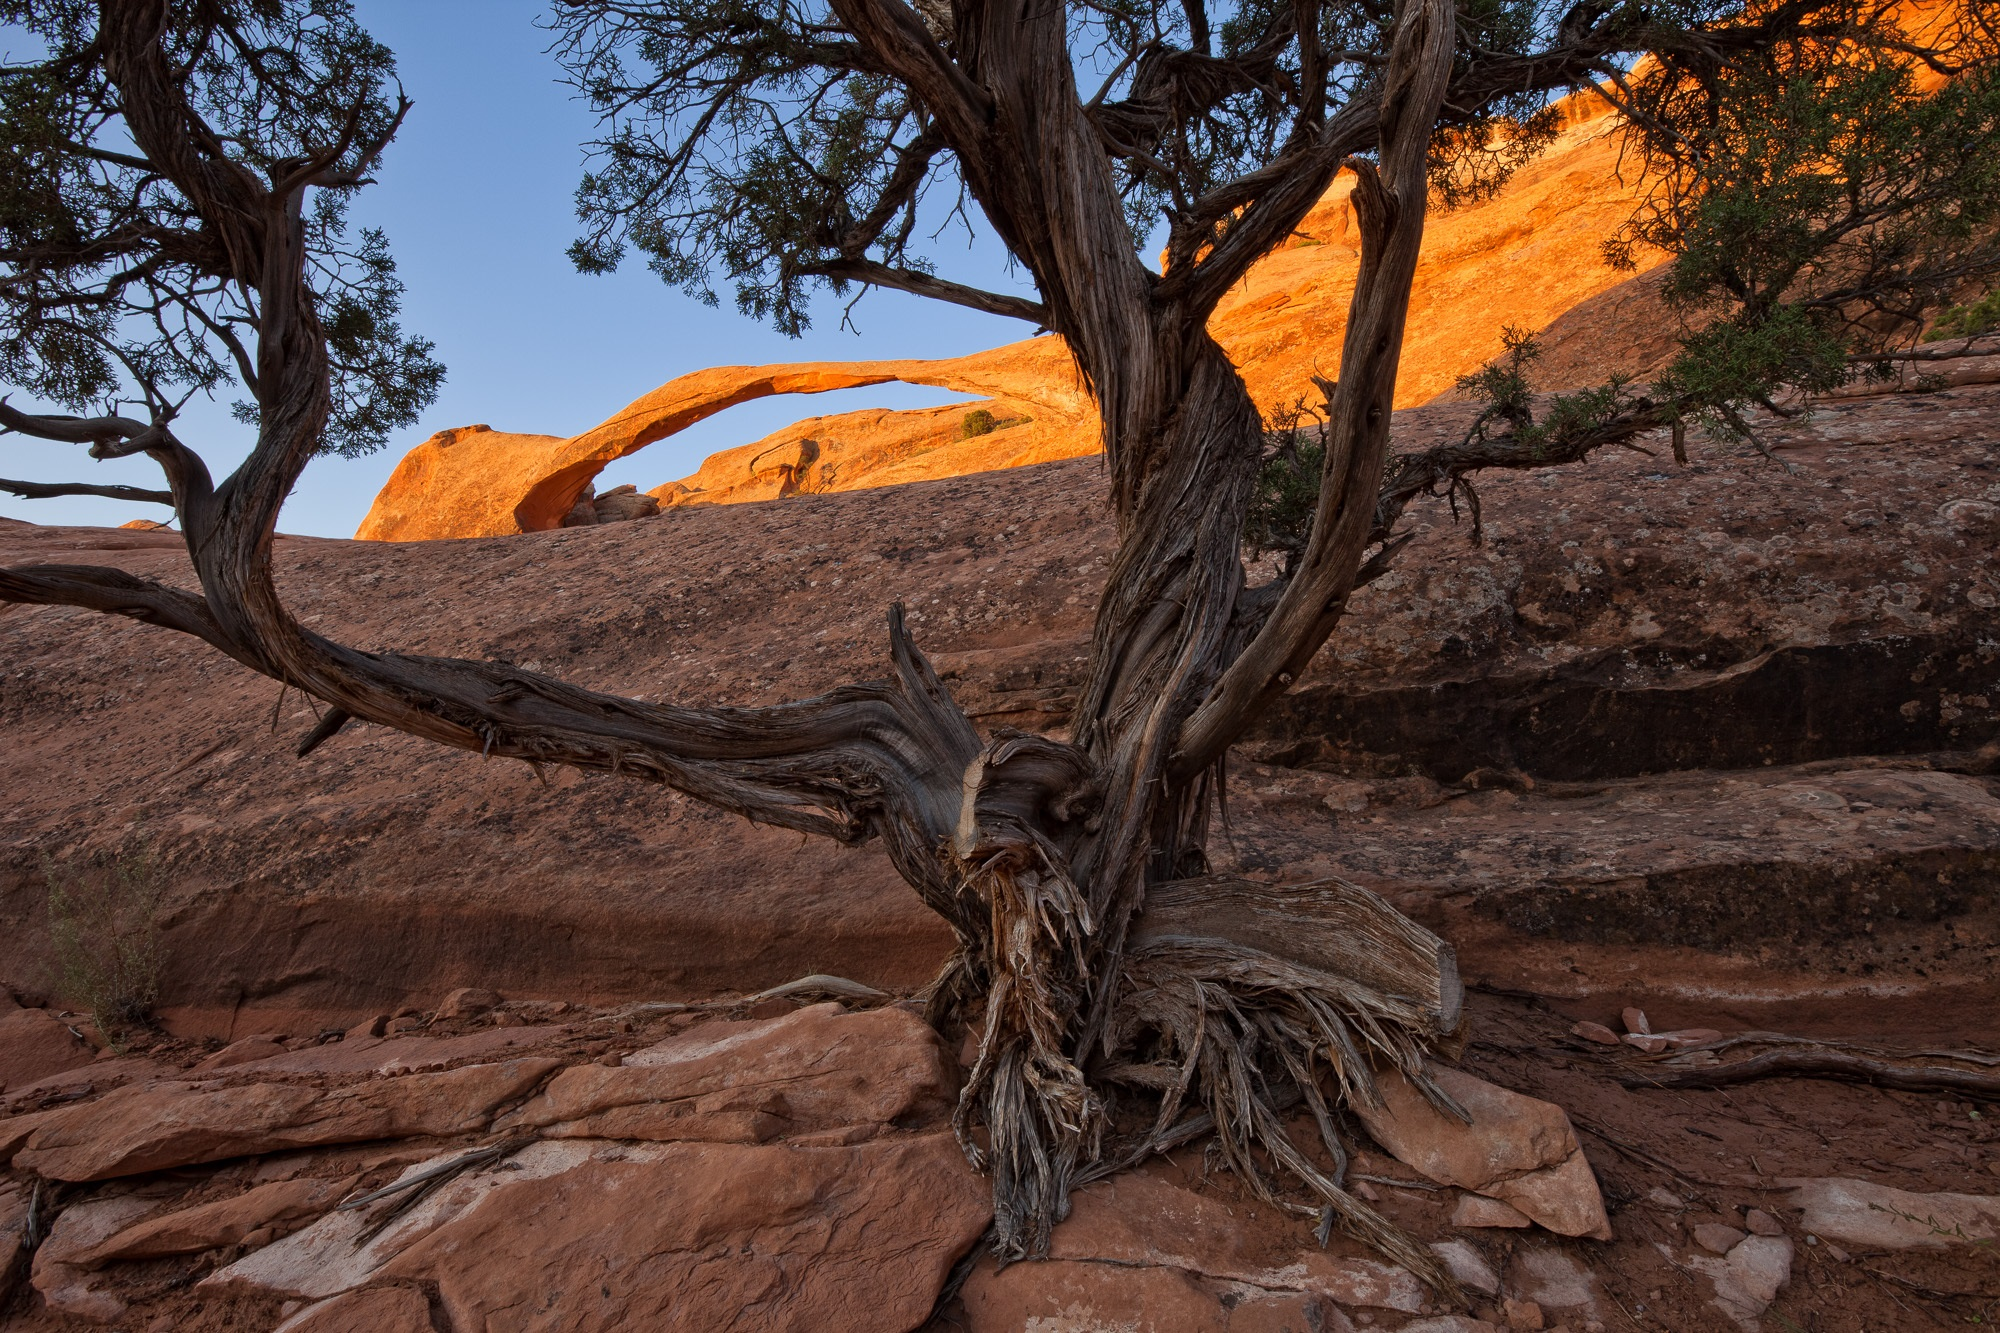 Juniper Tree Framing Landscape Arch at Sunrise, Arches National Park, Utah